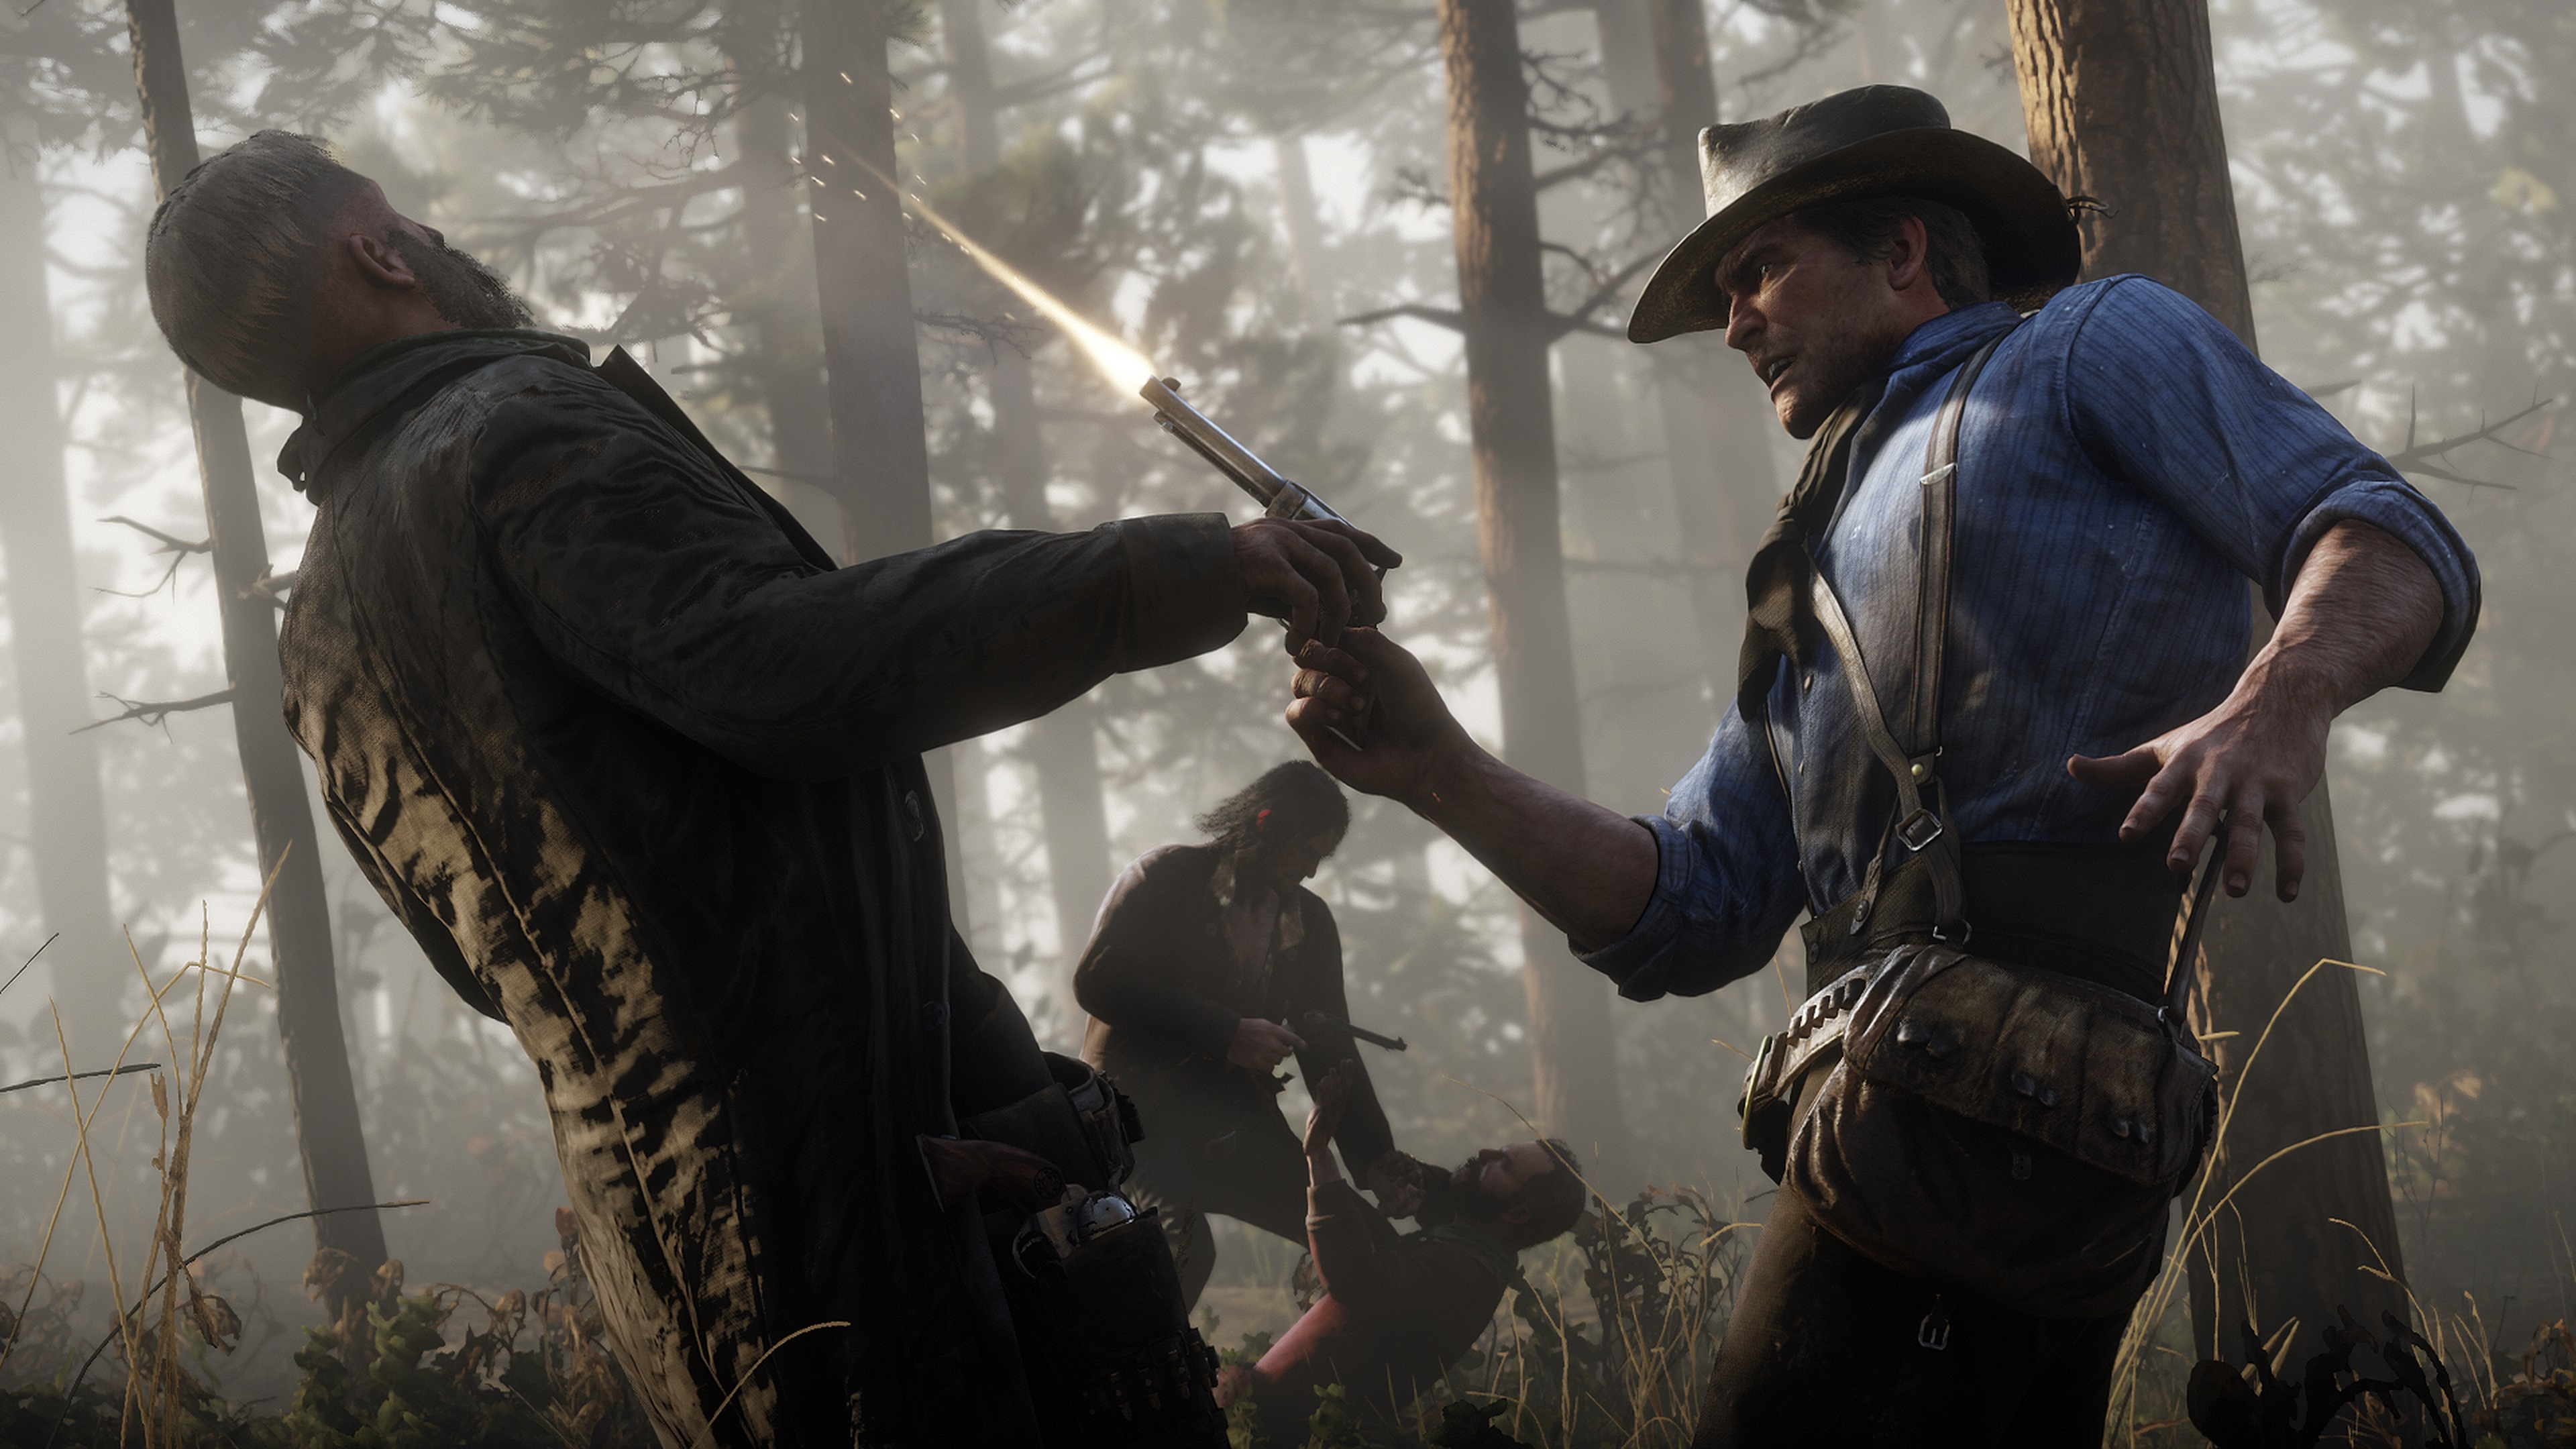 Red Dead Redemption 2 screenshot morgan tire en direction de la tête d'un adversaire